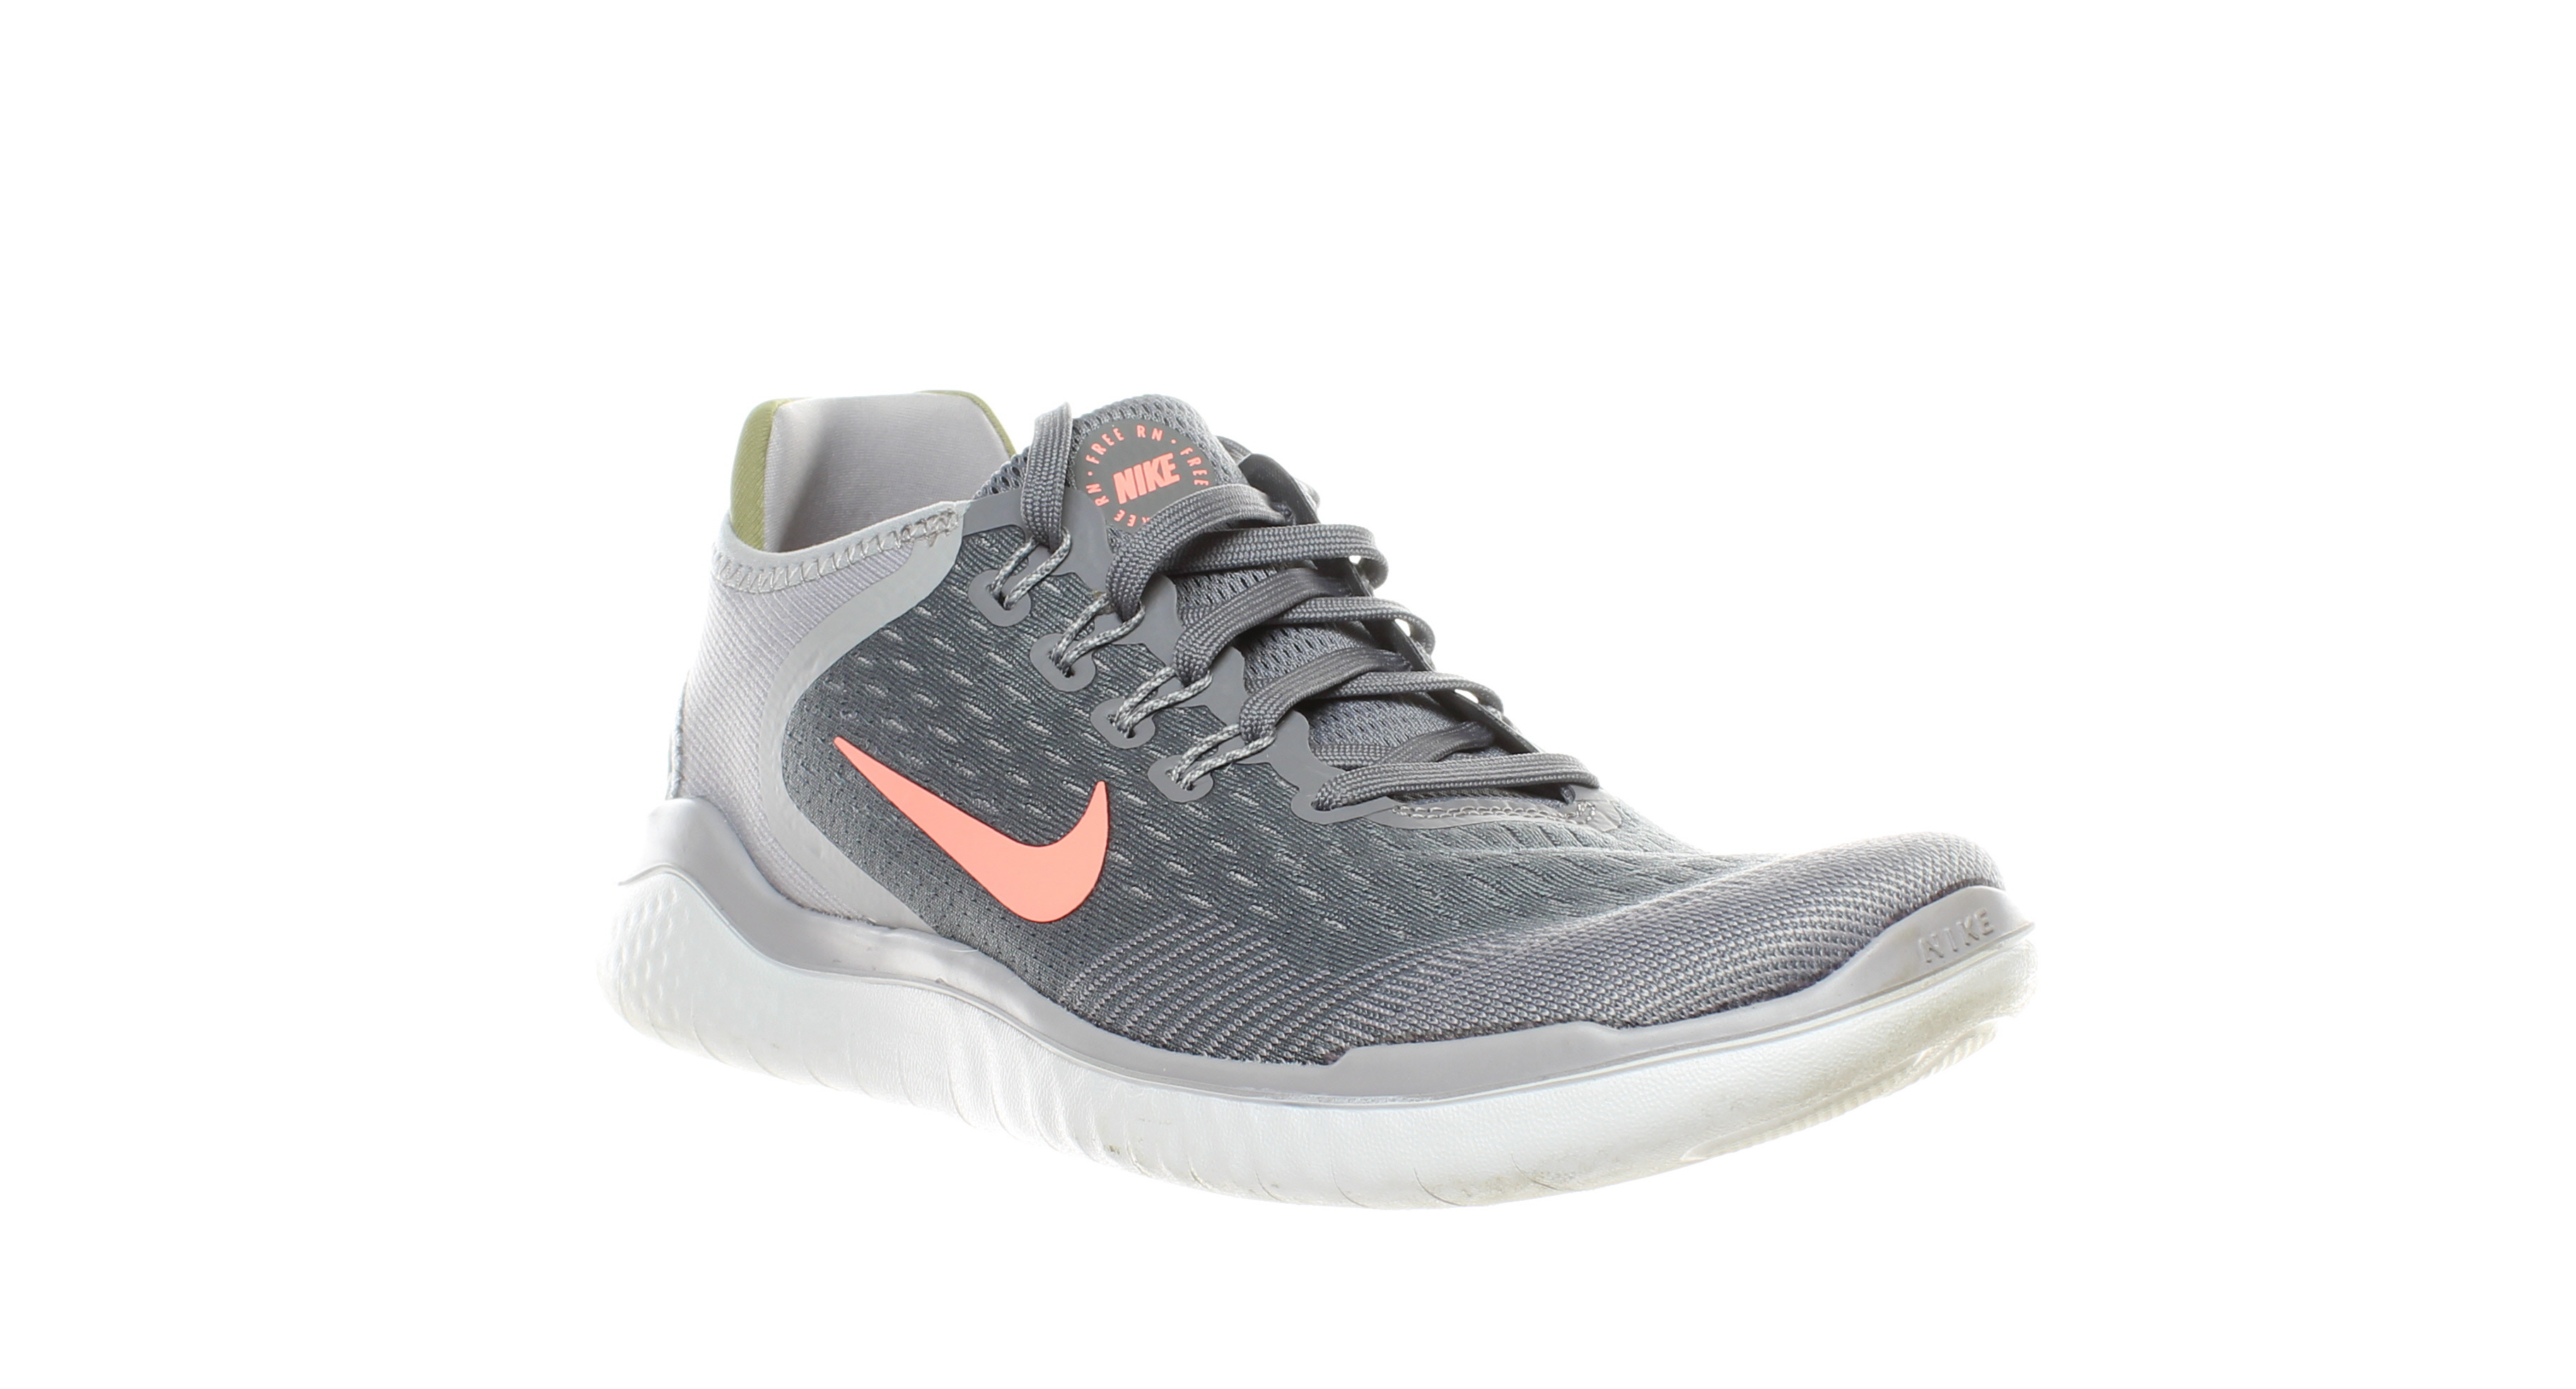 official photos ca179 246e2 Details about Nike Womens Nike Free Rn 2018 Gray Running Shoes Size 9  (270755)